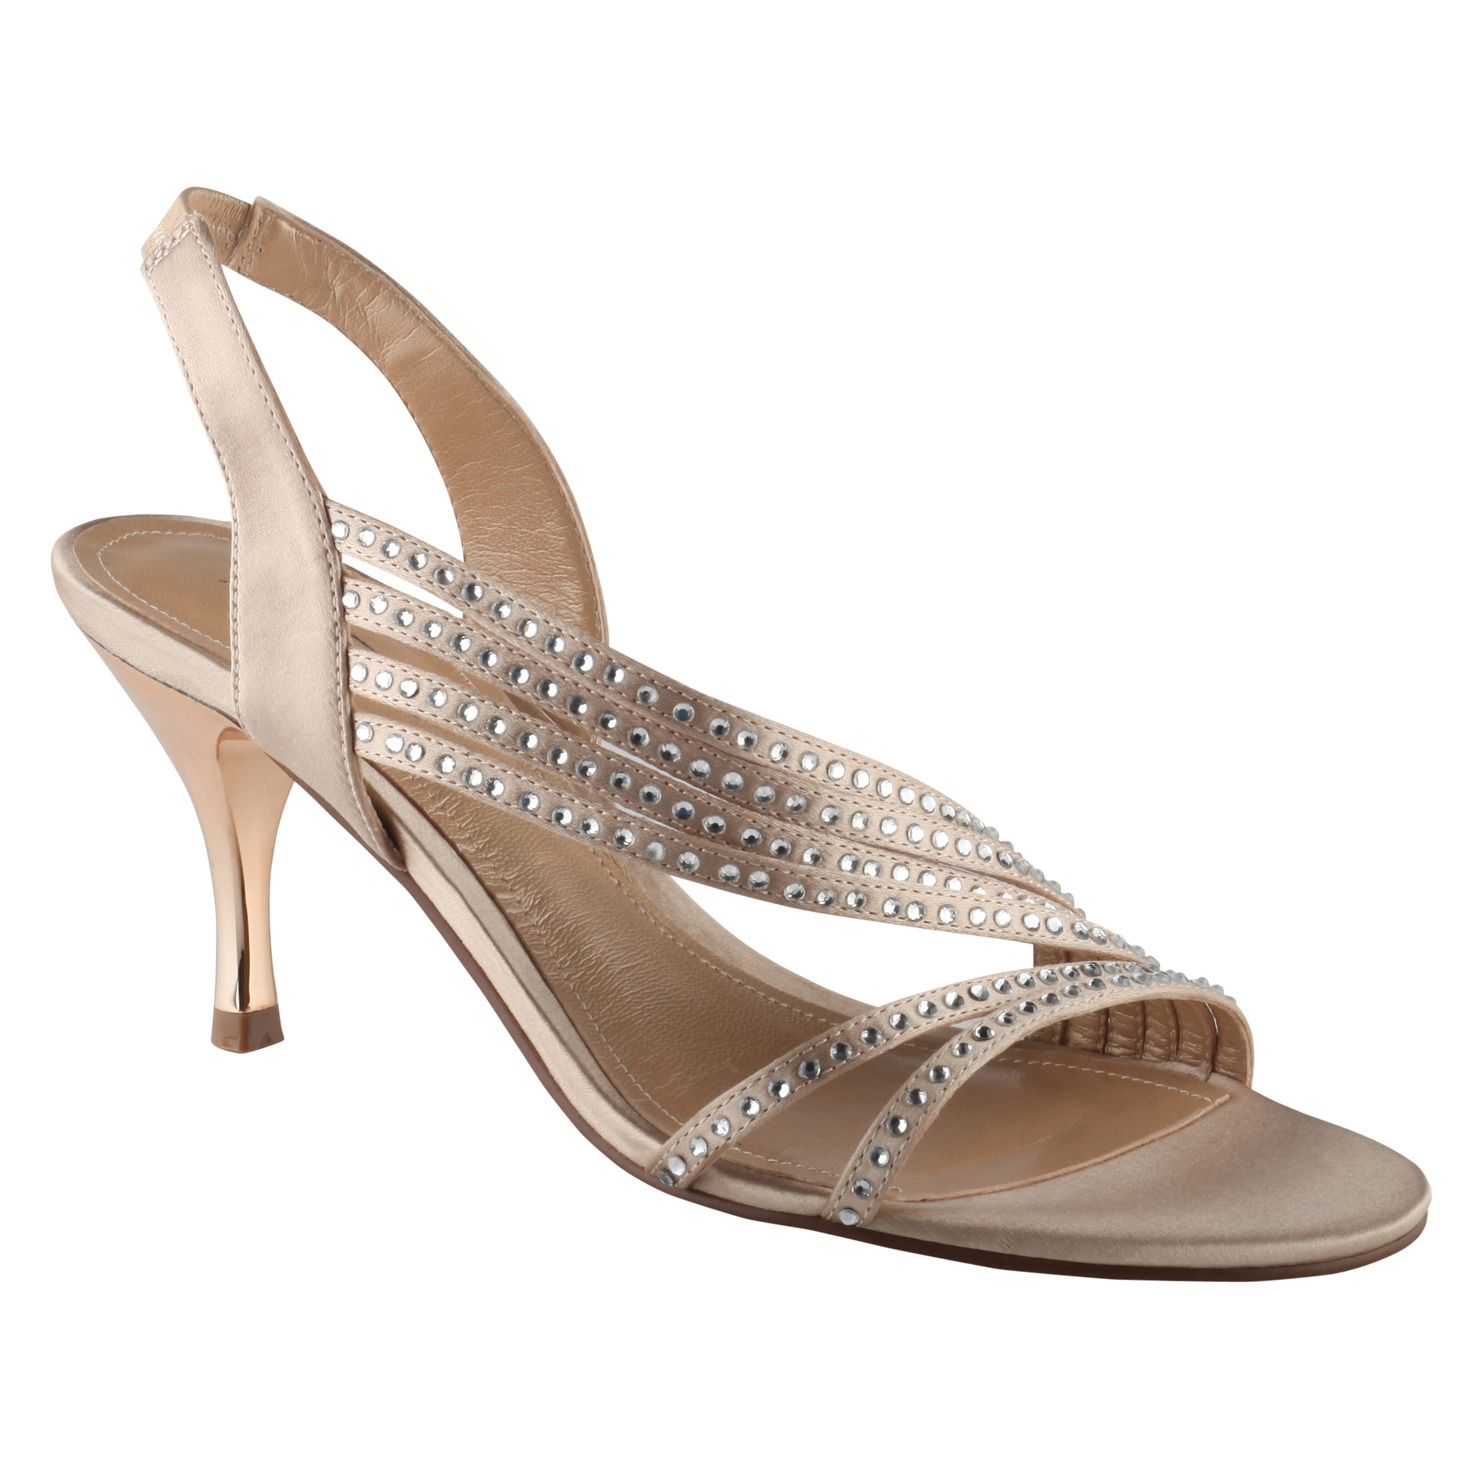 Bridal Shoes Aldo: Women's Special Occasion Sandals For Sale At